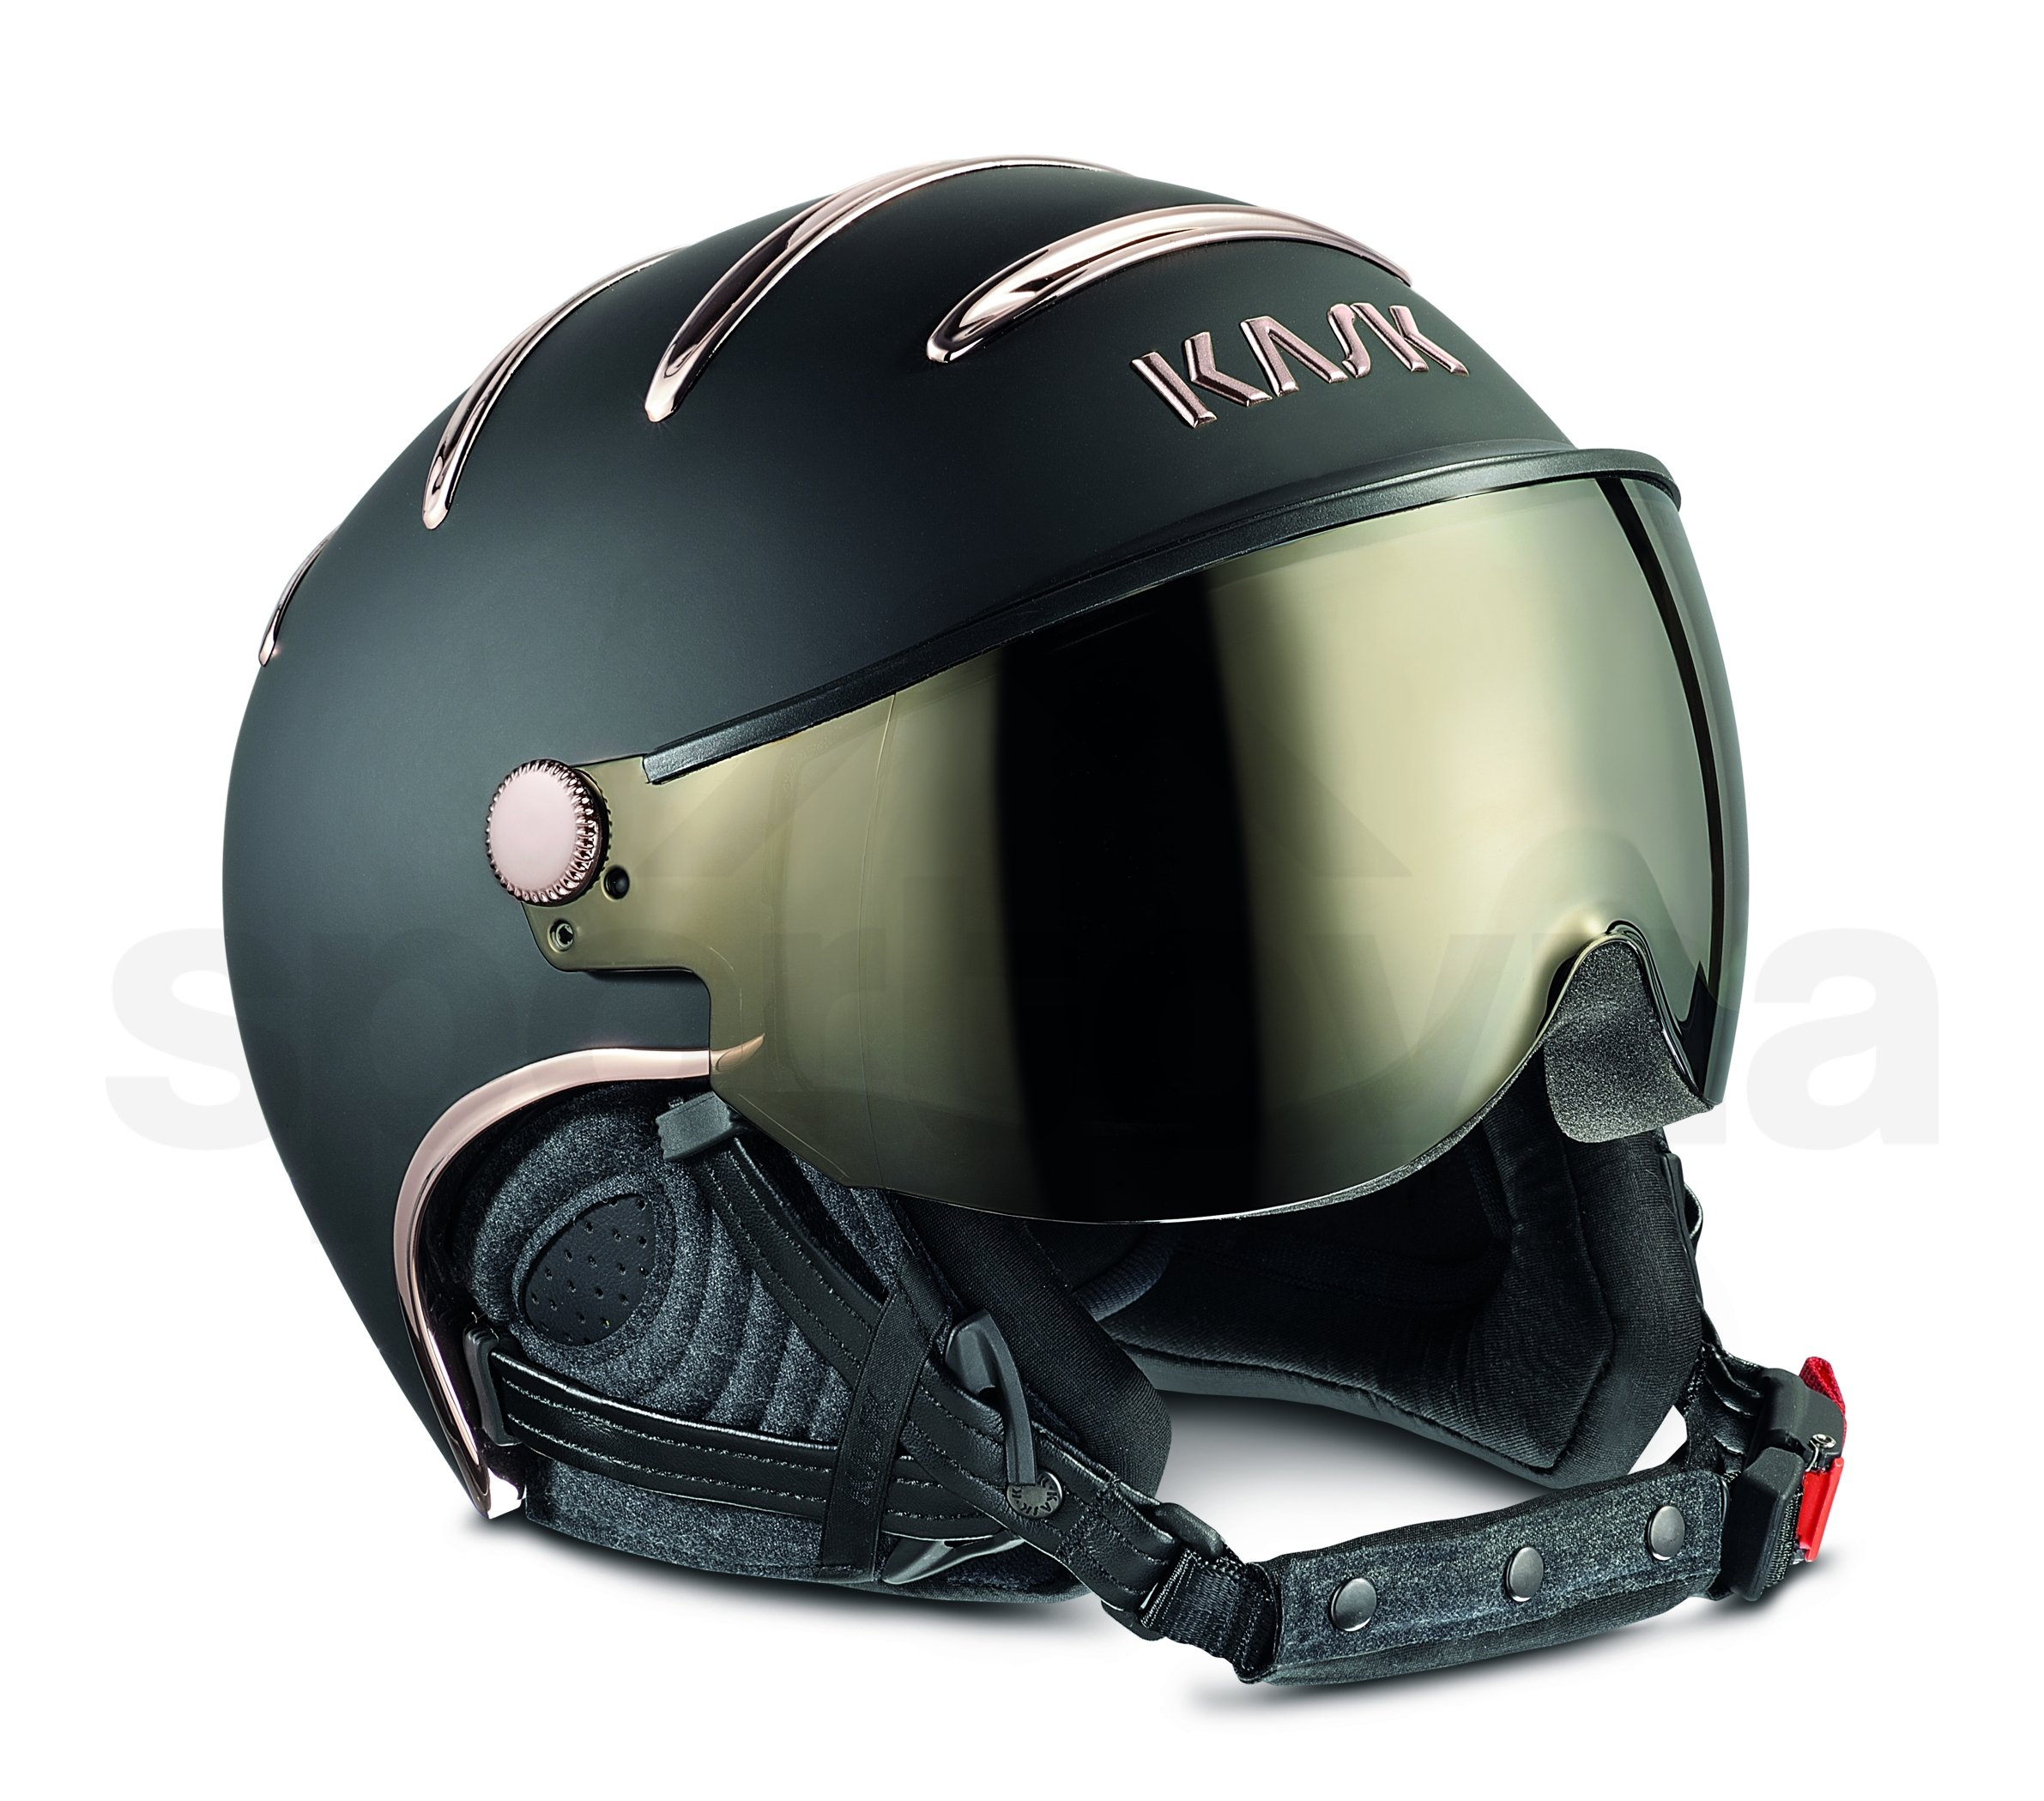 Kask Chrome - BlackPink Gold_1819_2300px